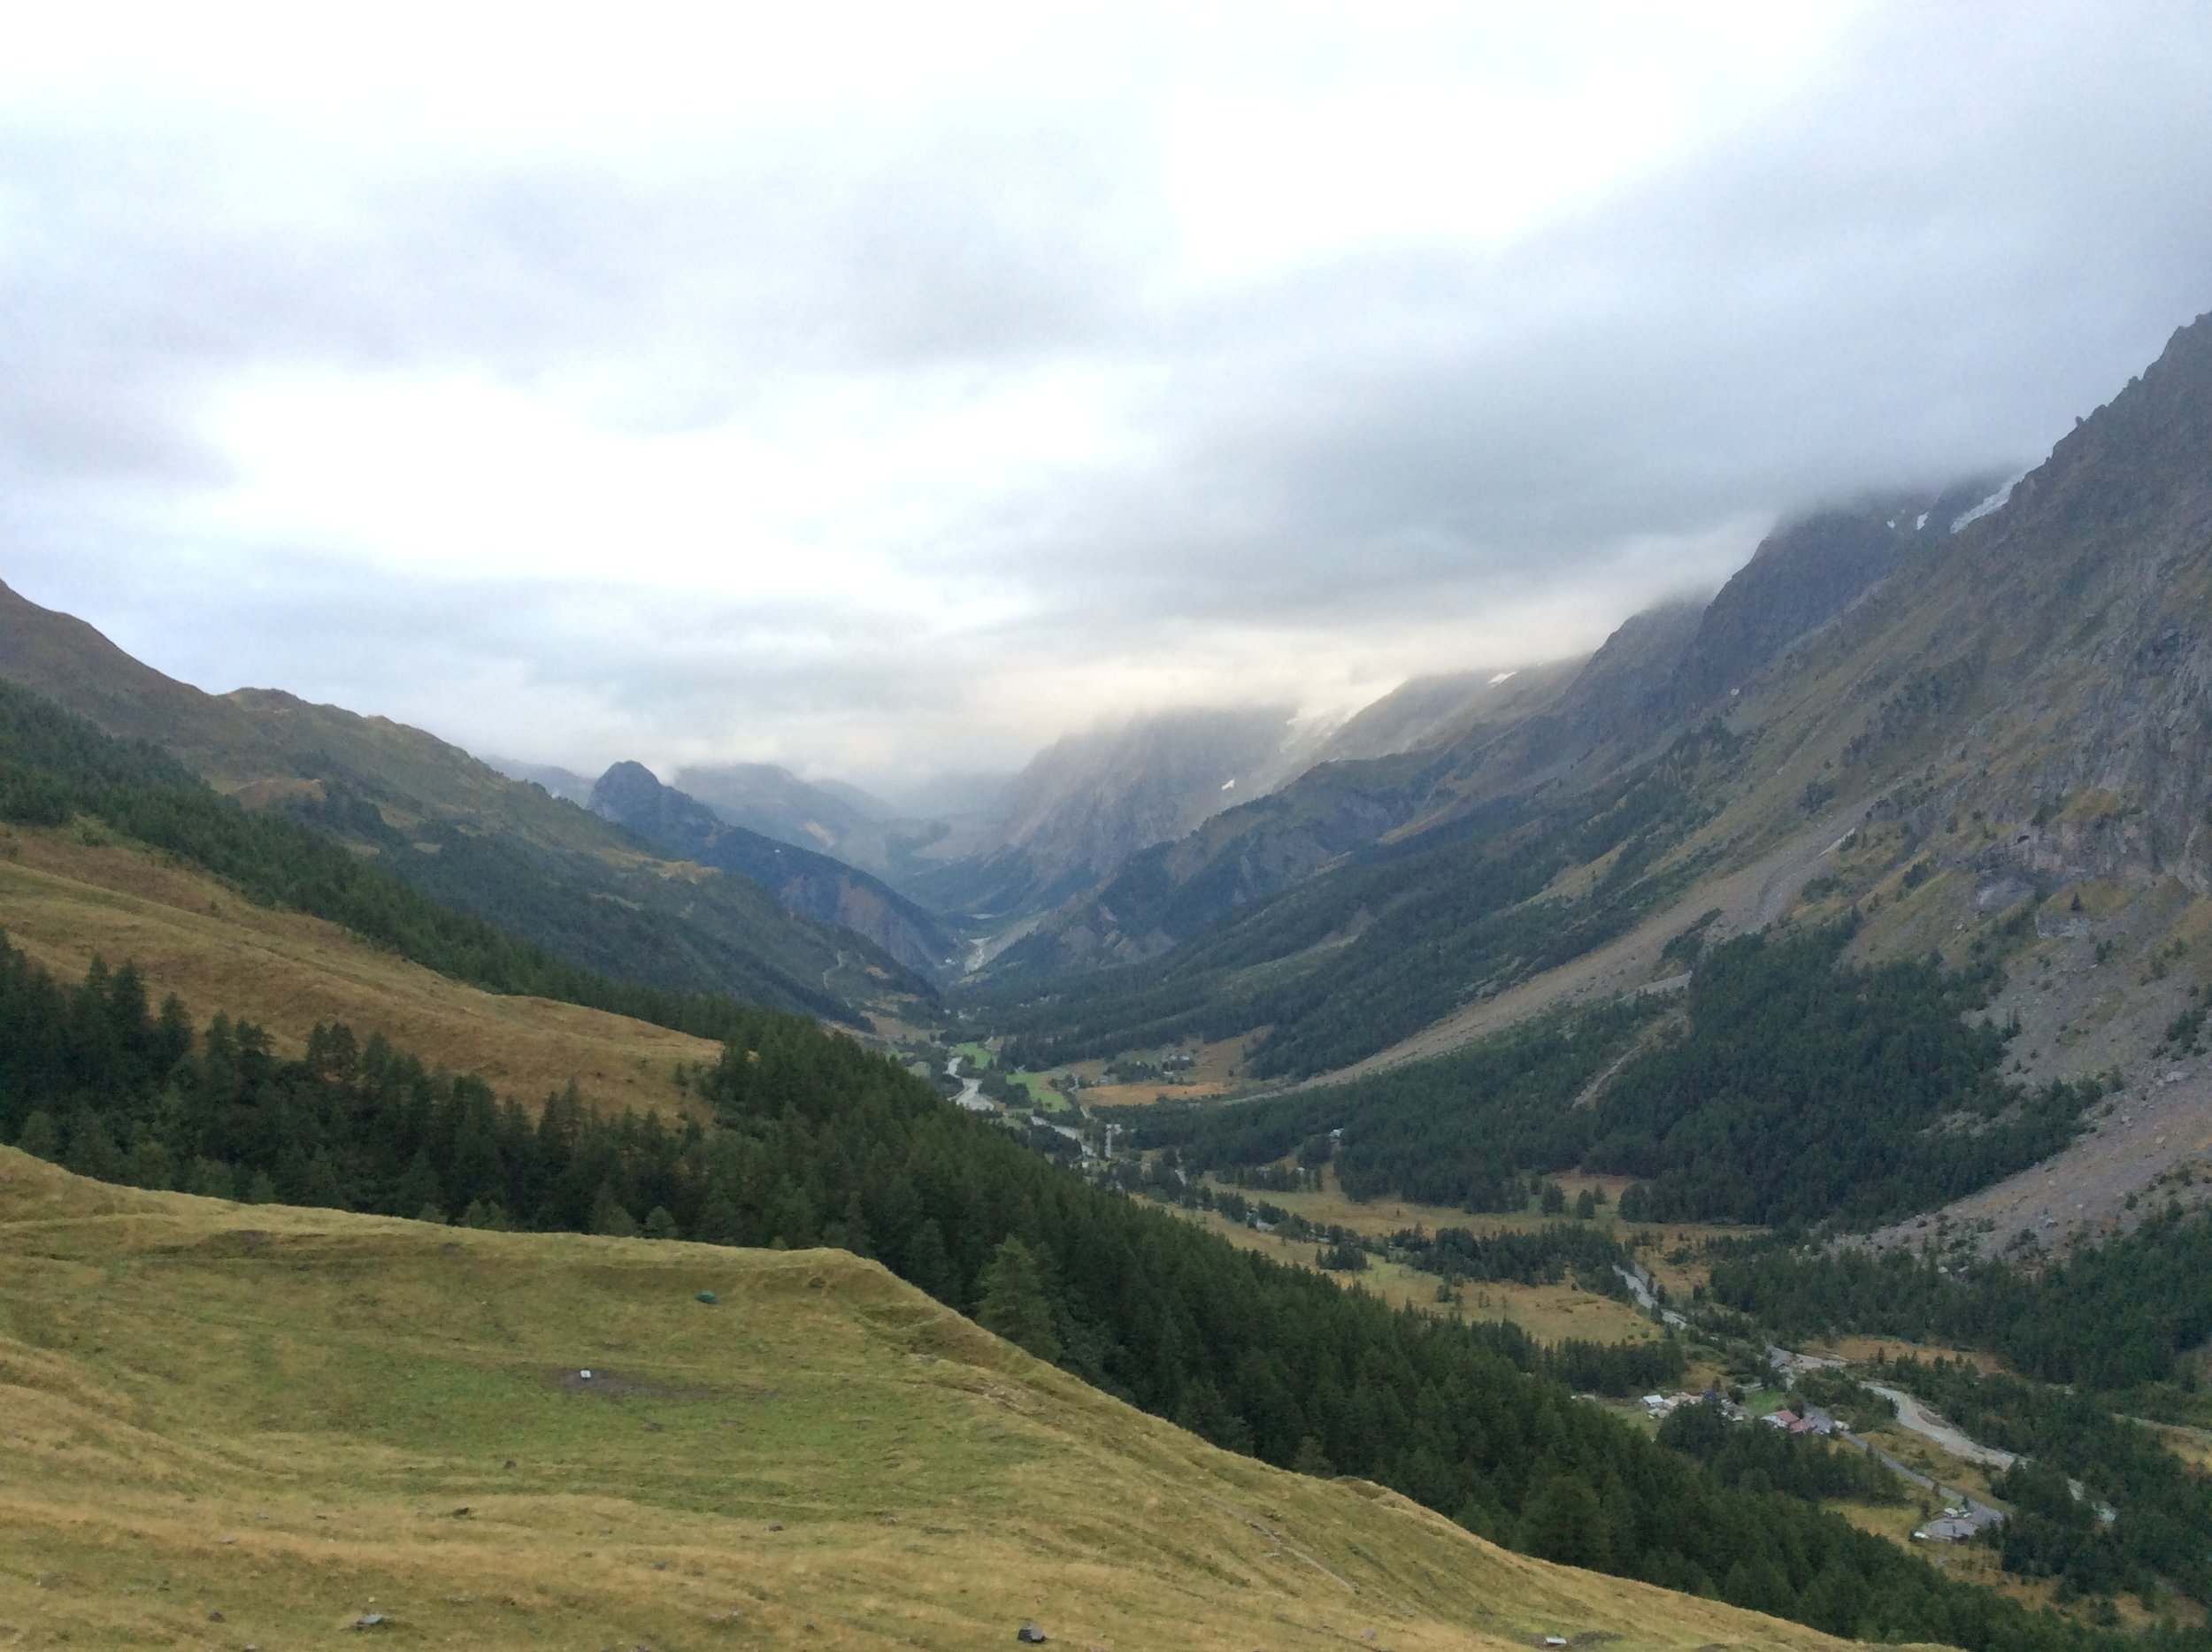 Looking back to Bonatti